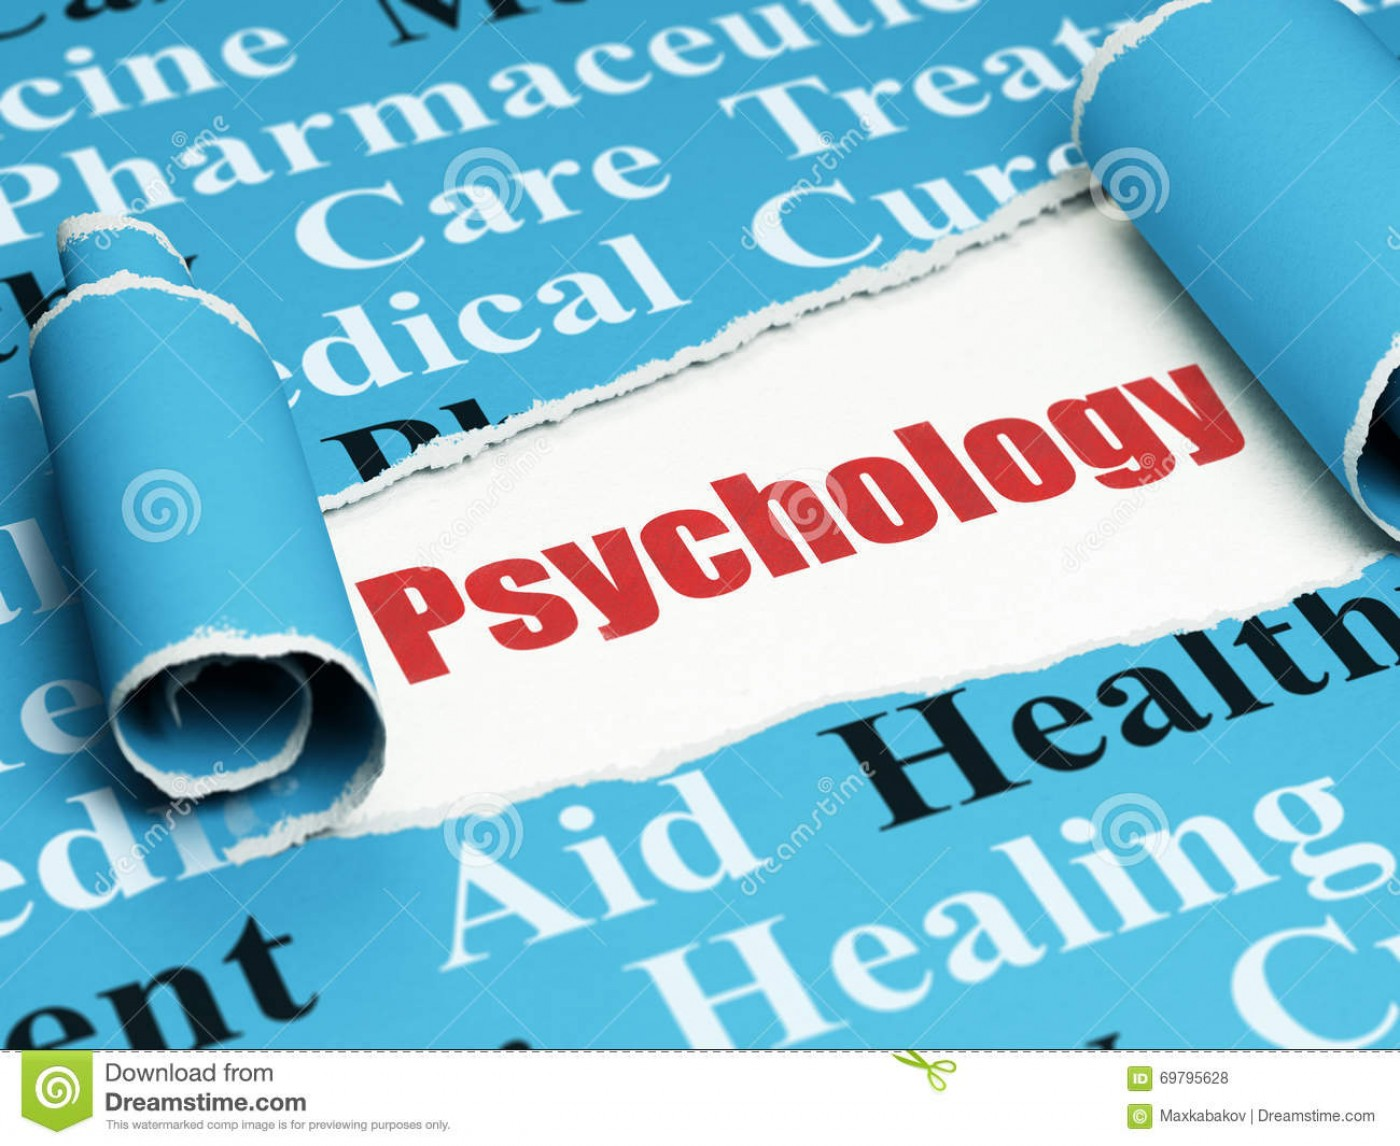 010 Research Paper Psychology On Dreams Health Concept Red Text Under Piece Torn Curled Blue Tag Cloud Rendering Singular 1400